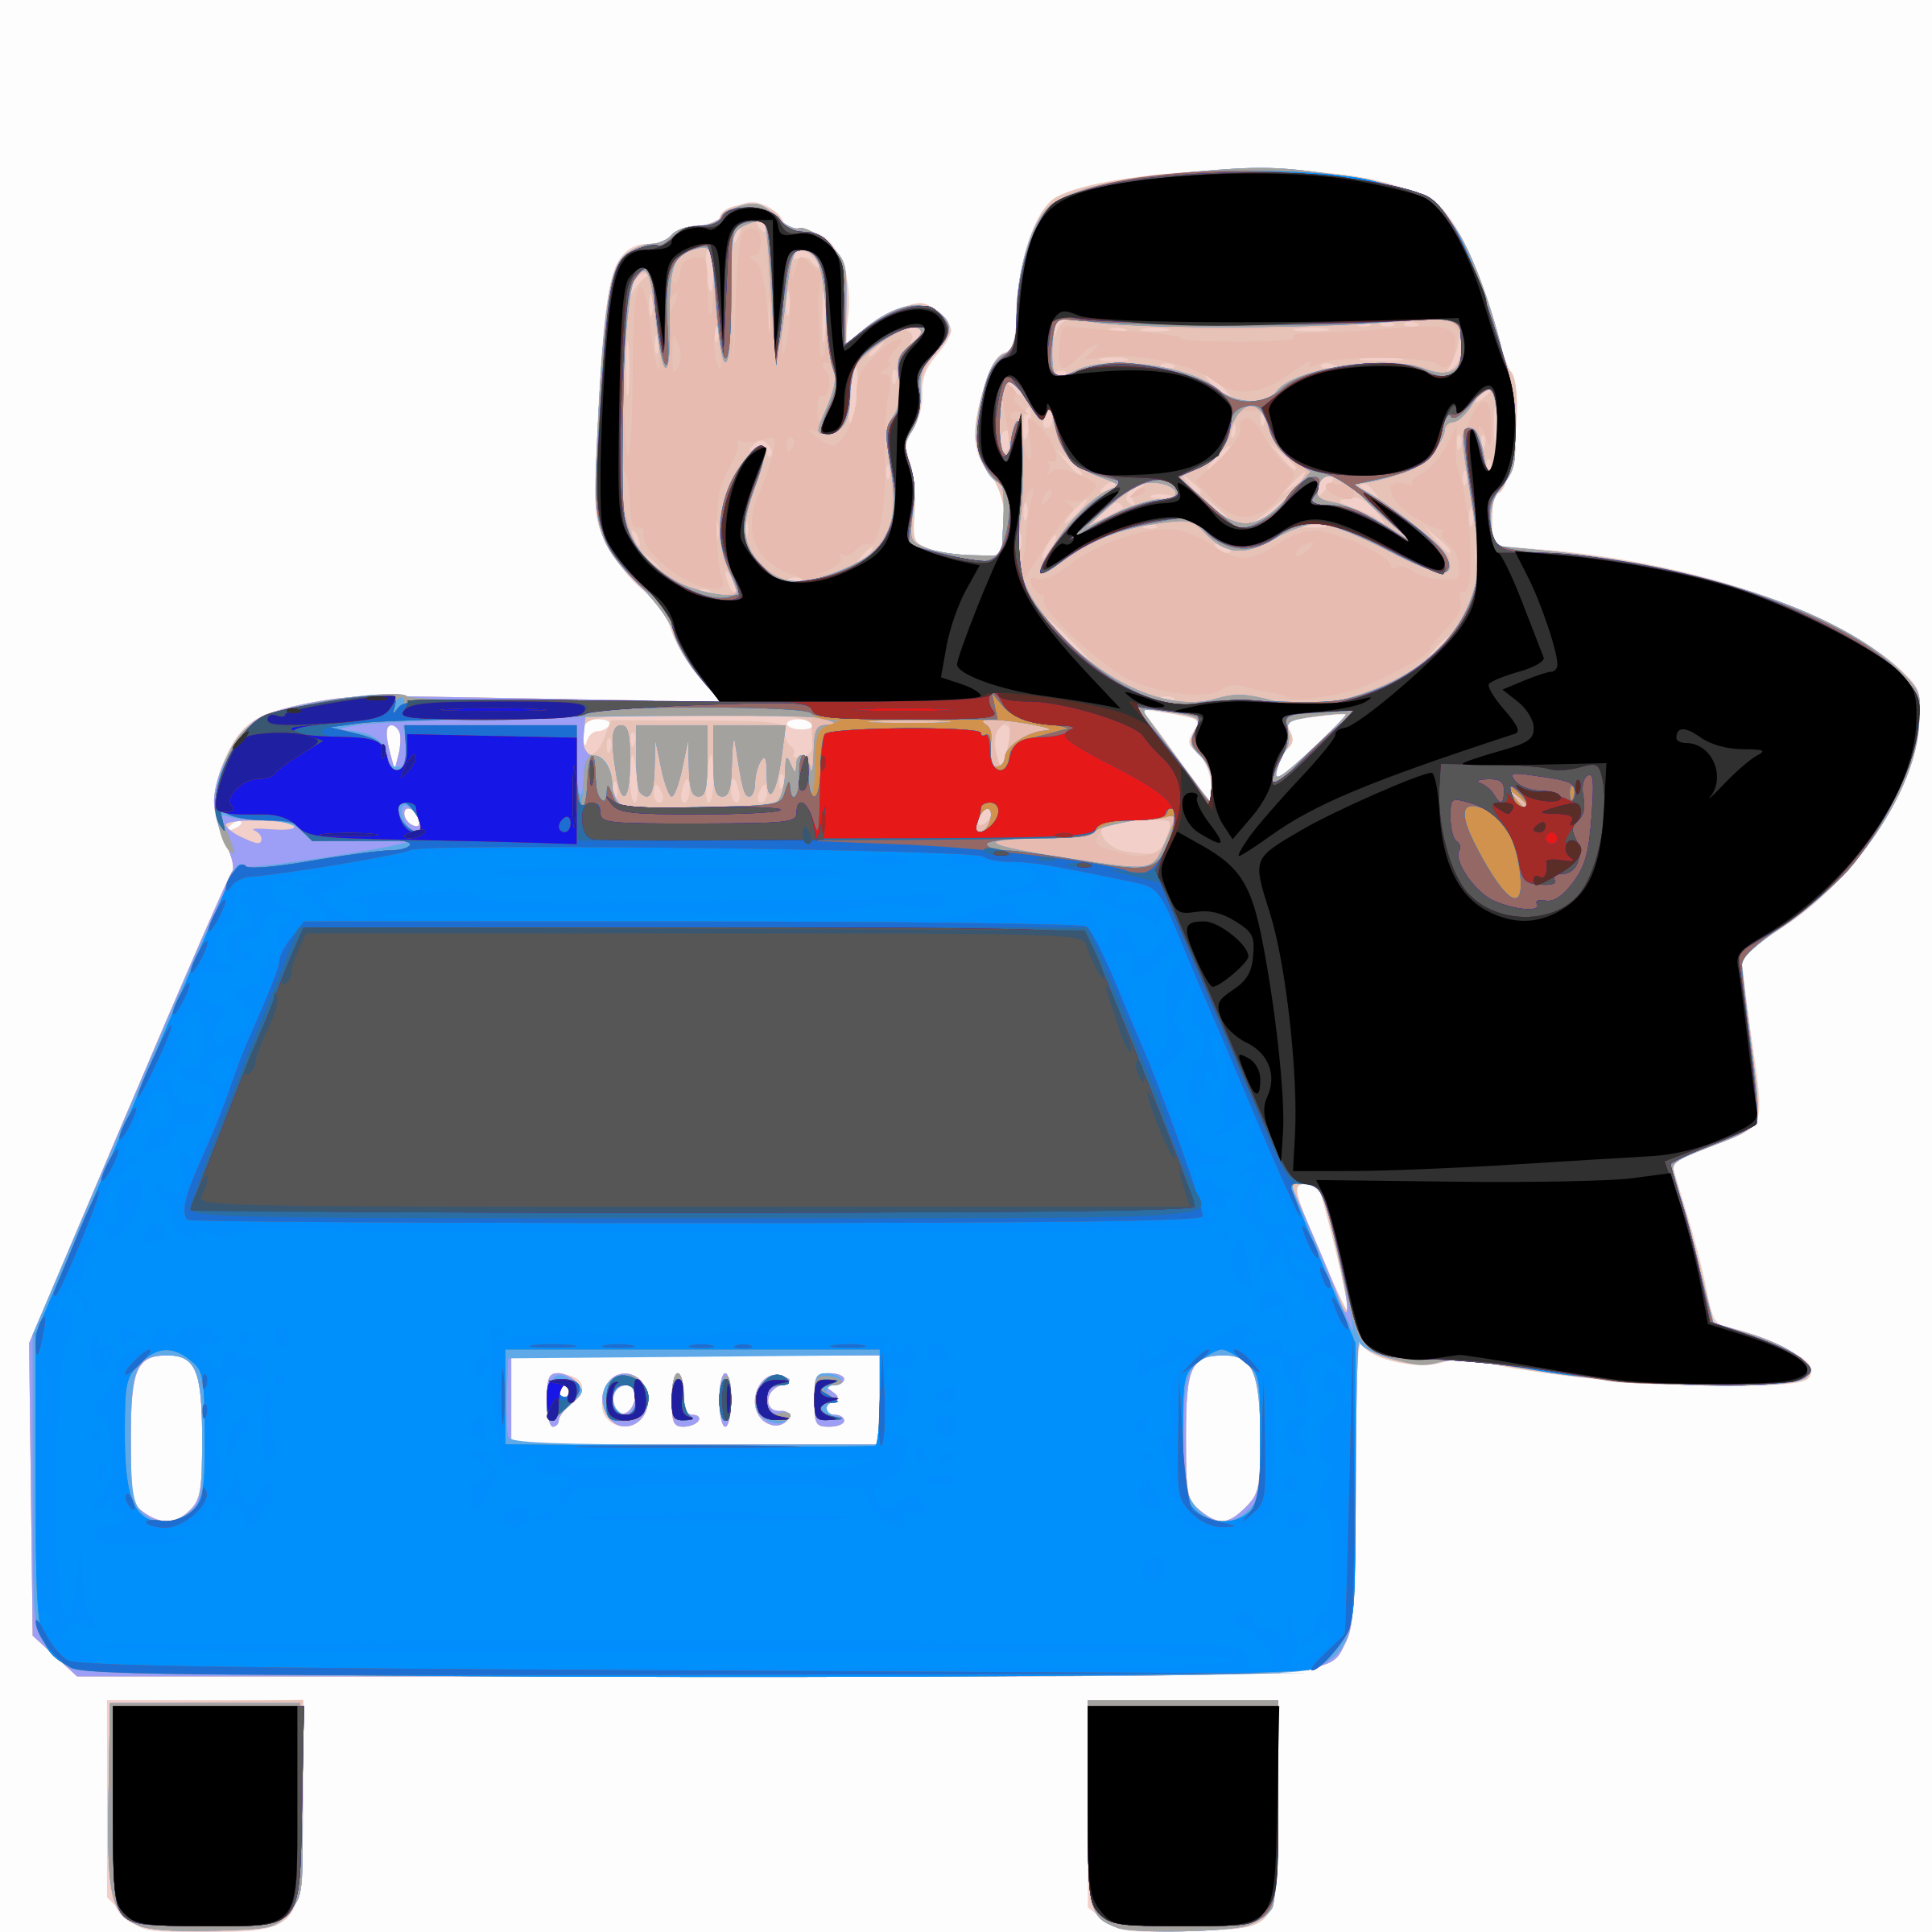 2400x2400 Police Discipline Branch In Action Icons Png